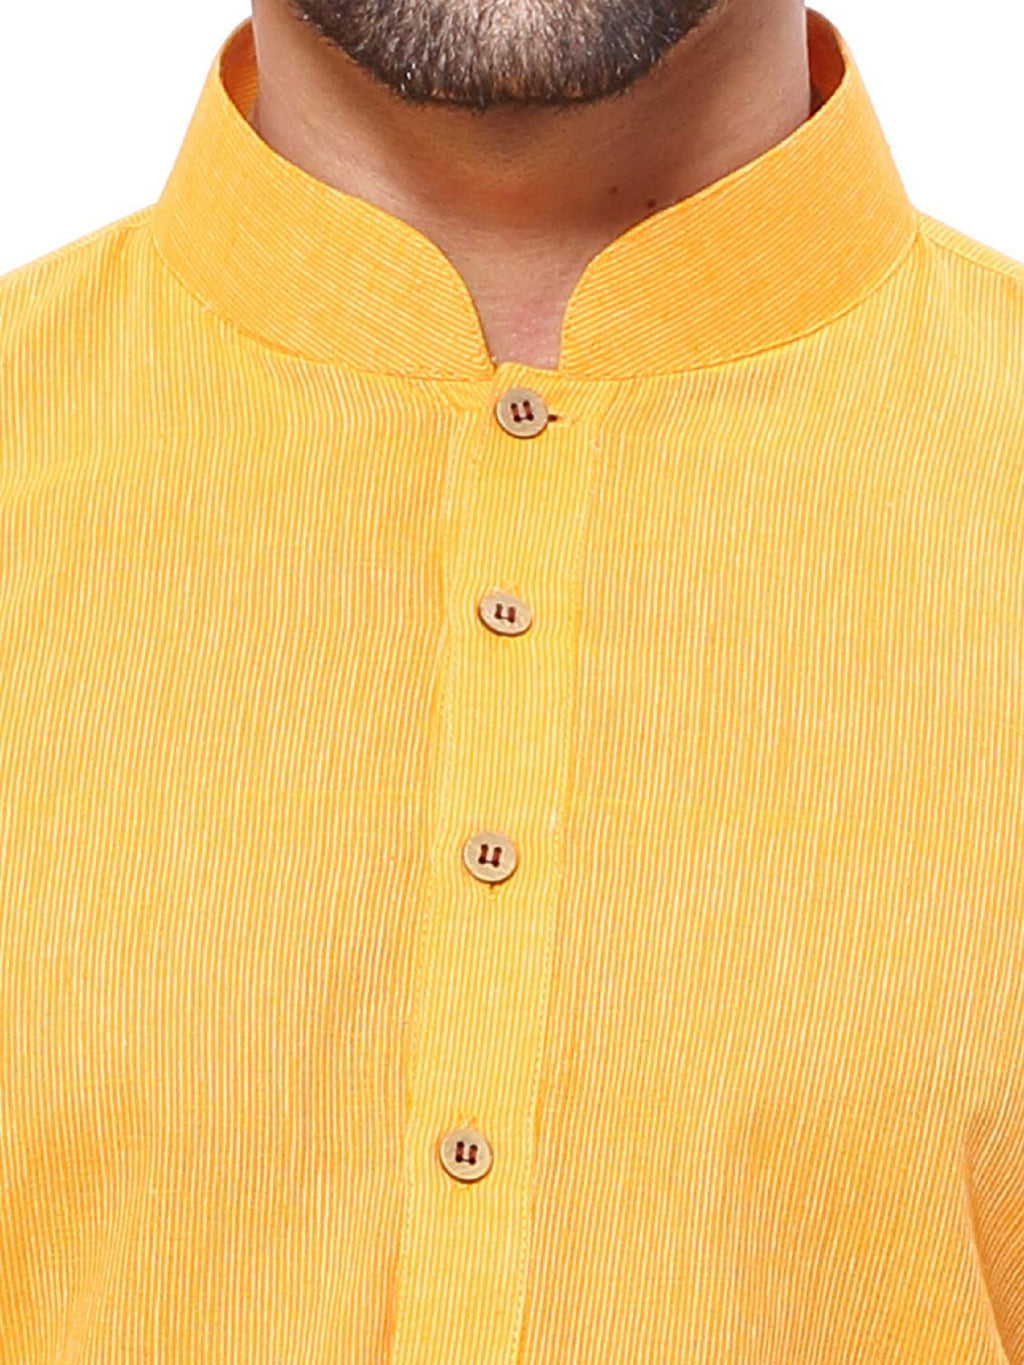 Men's Handloom Yellow Kurta Pyjama